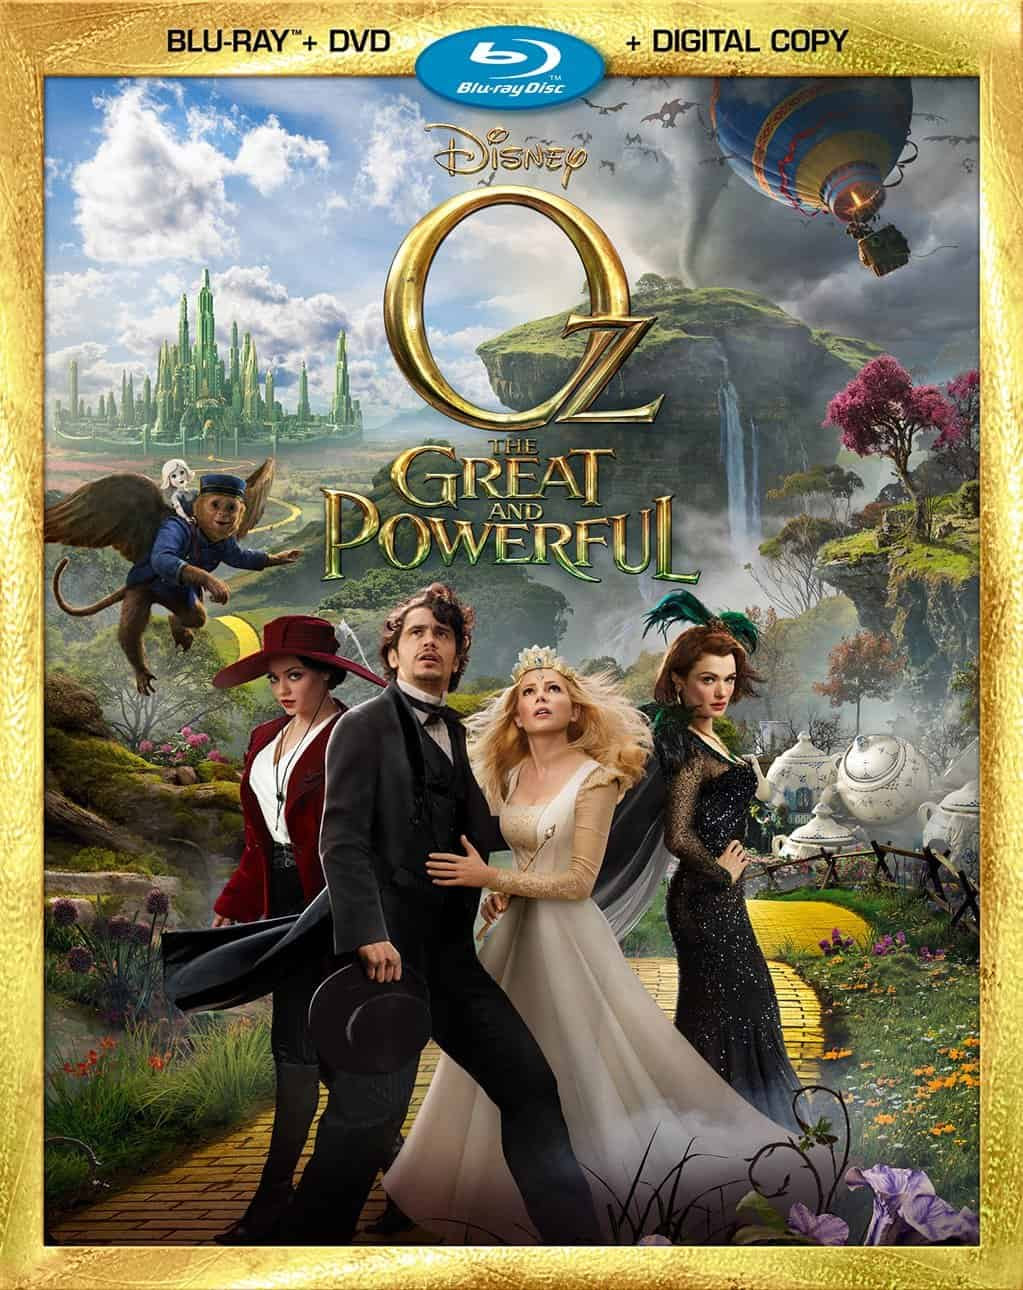 Oz the Great and Powerful on DVD and Blu-Ray